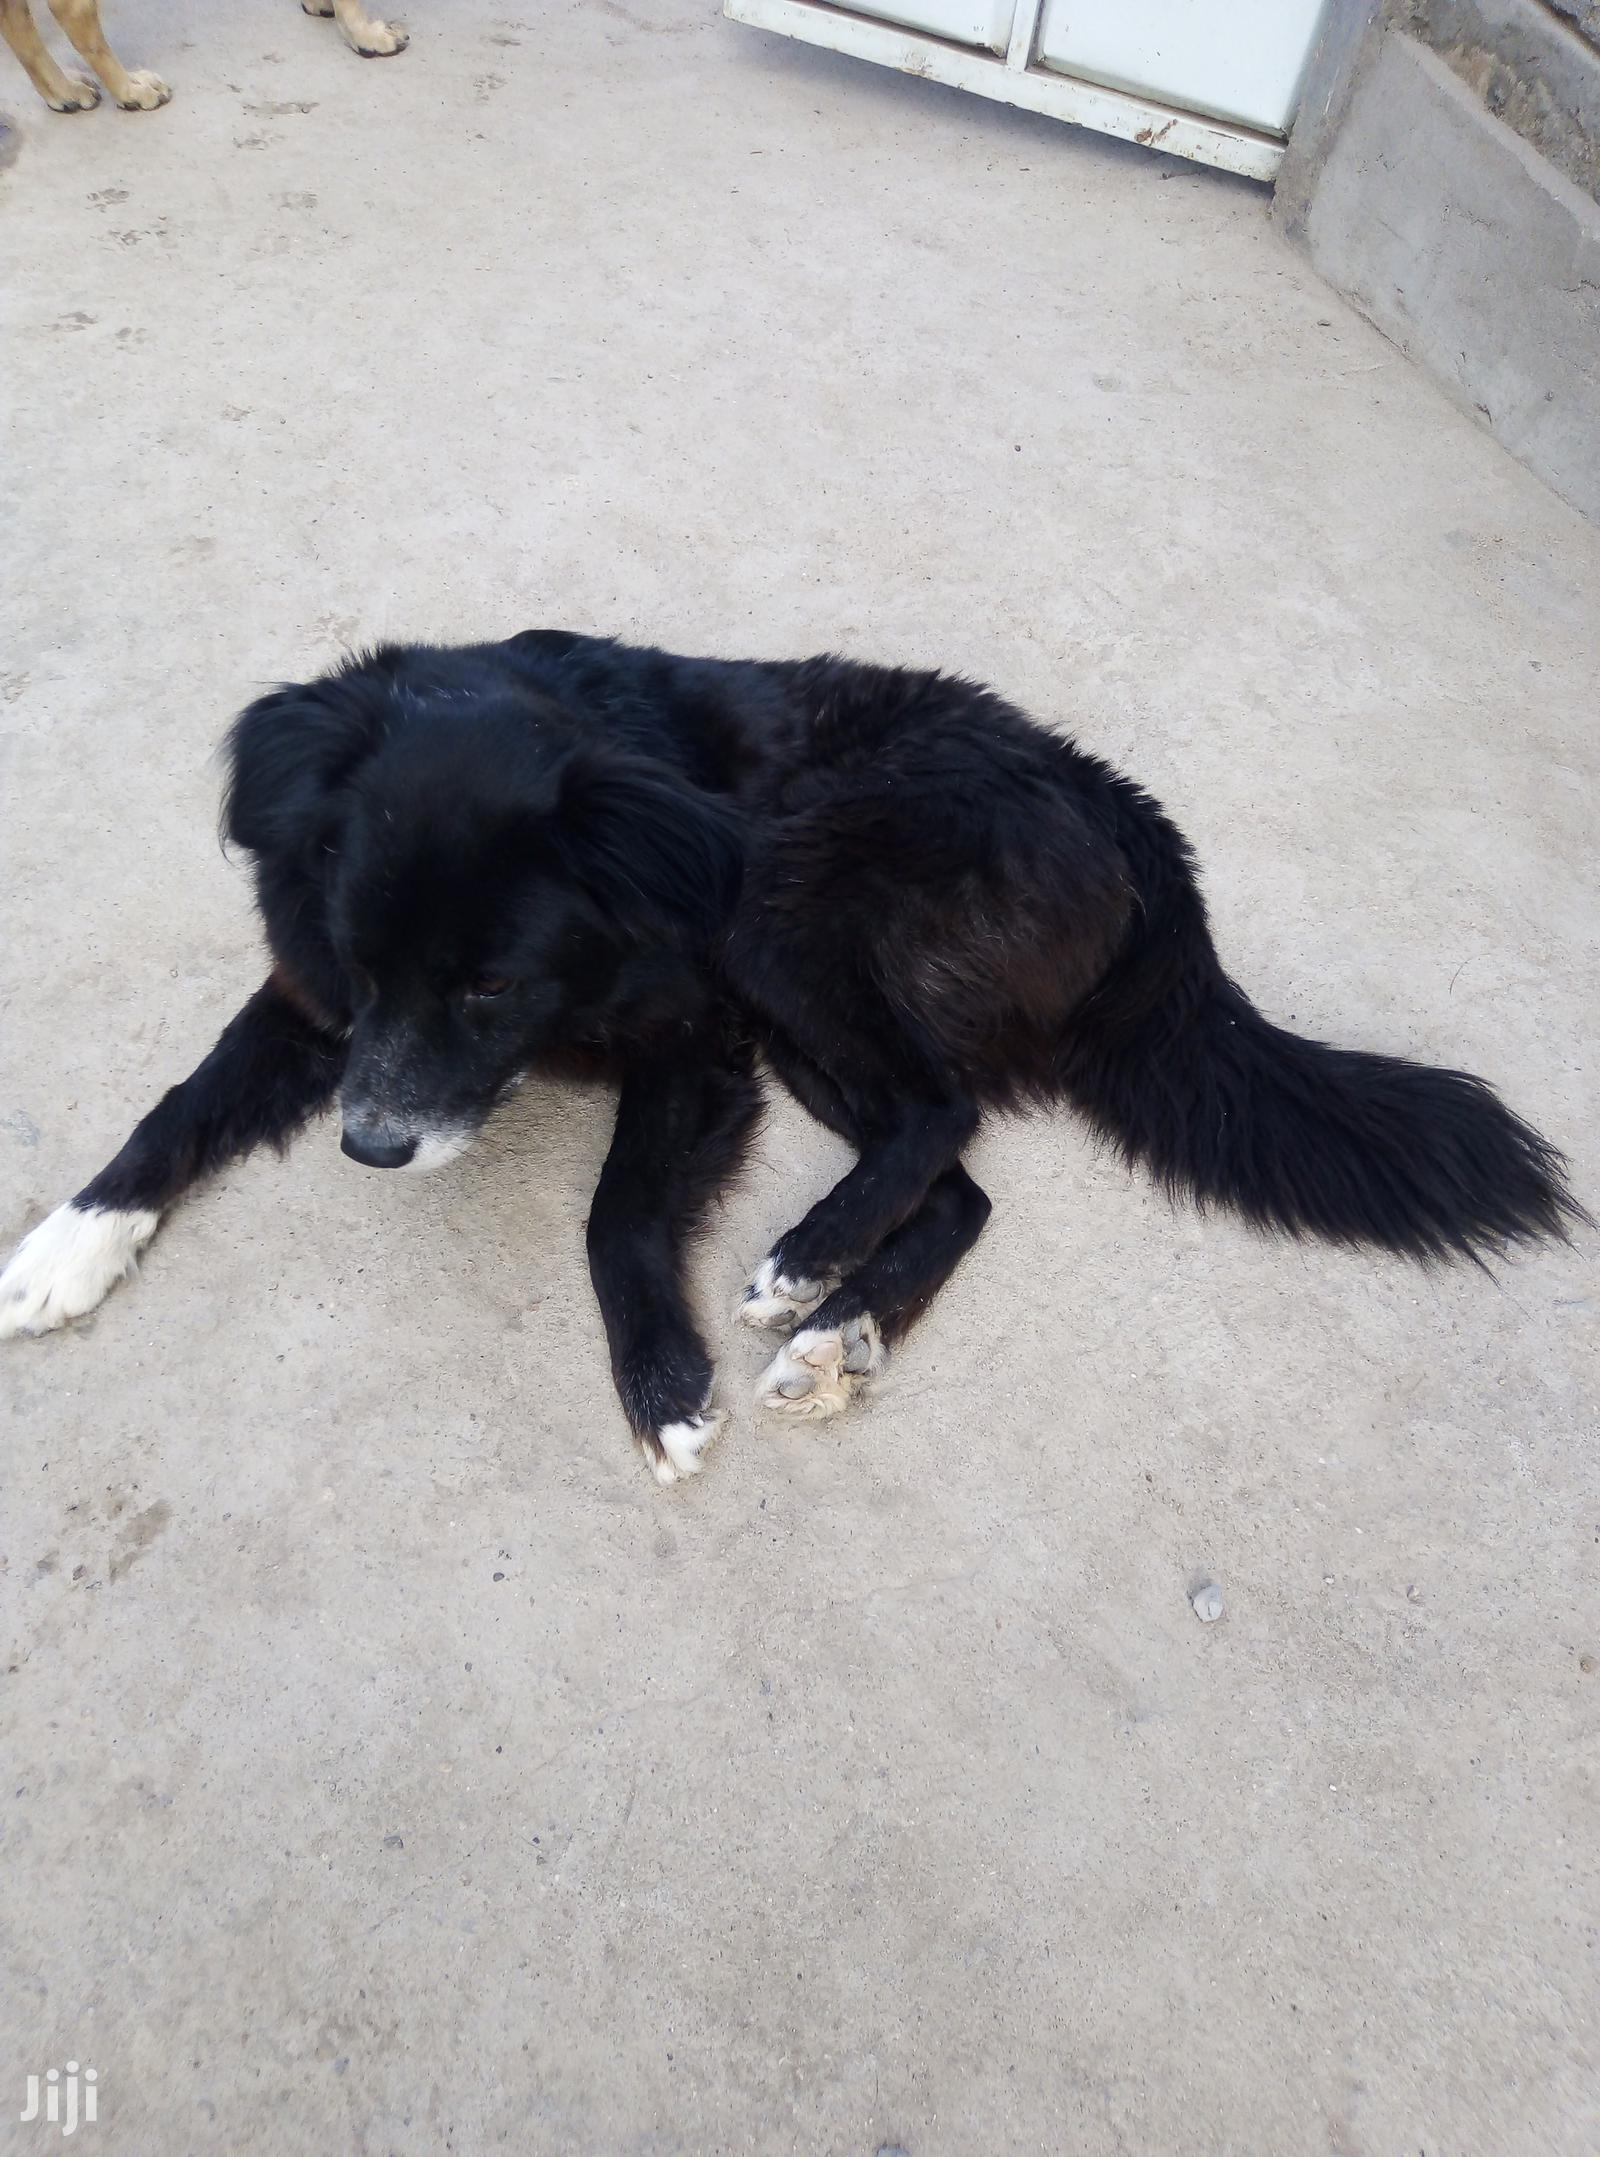 Archive: Senior Male Purebred Flat-Coated Retriever